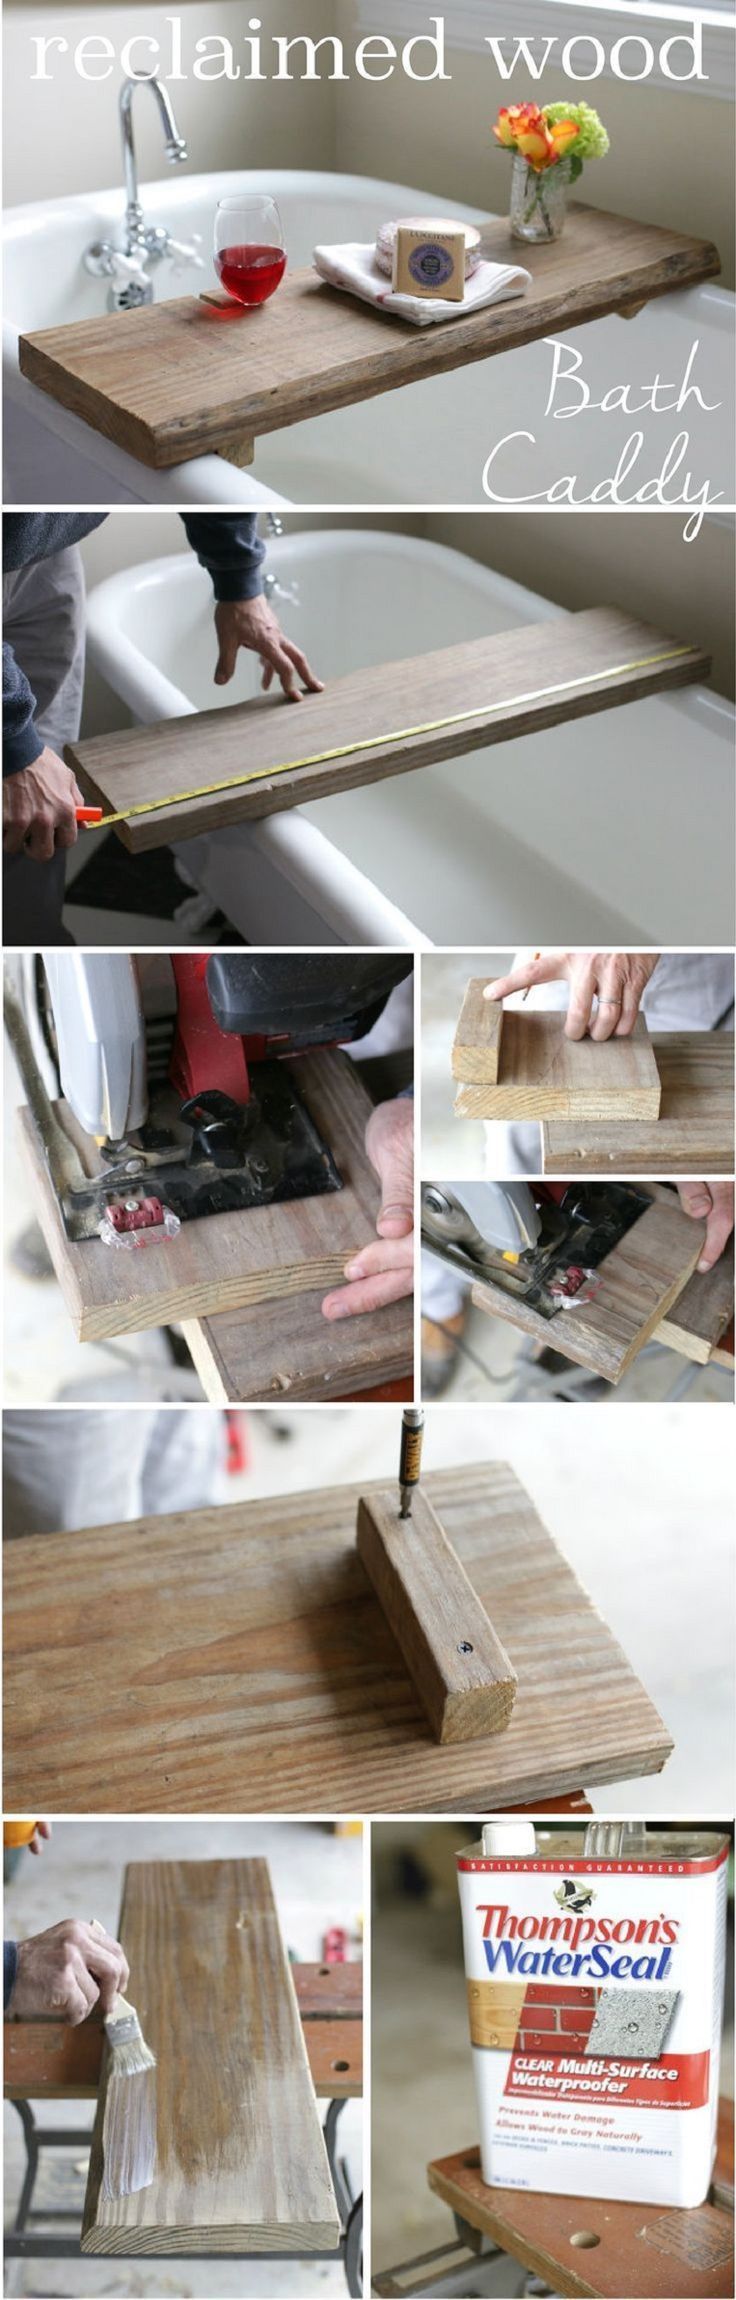 Bath Caddy with A Built In Wine Holder - 17 Easy DIY Woodworking Project Tutorials | GleamItUp